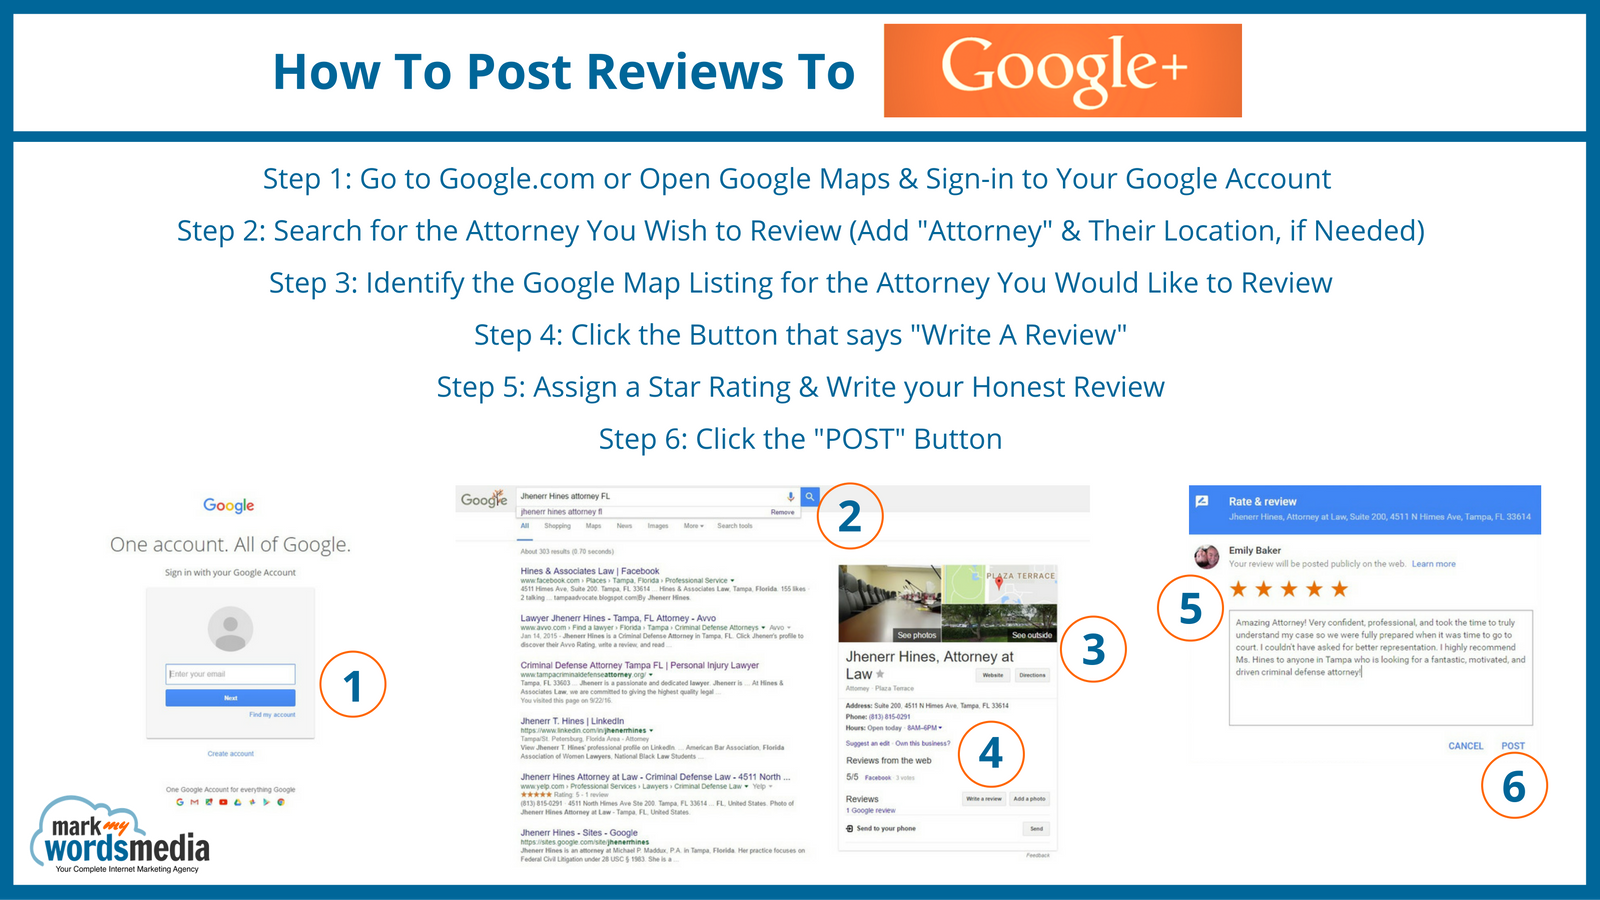 How to post attorney reviews to Google+